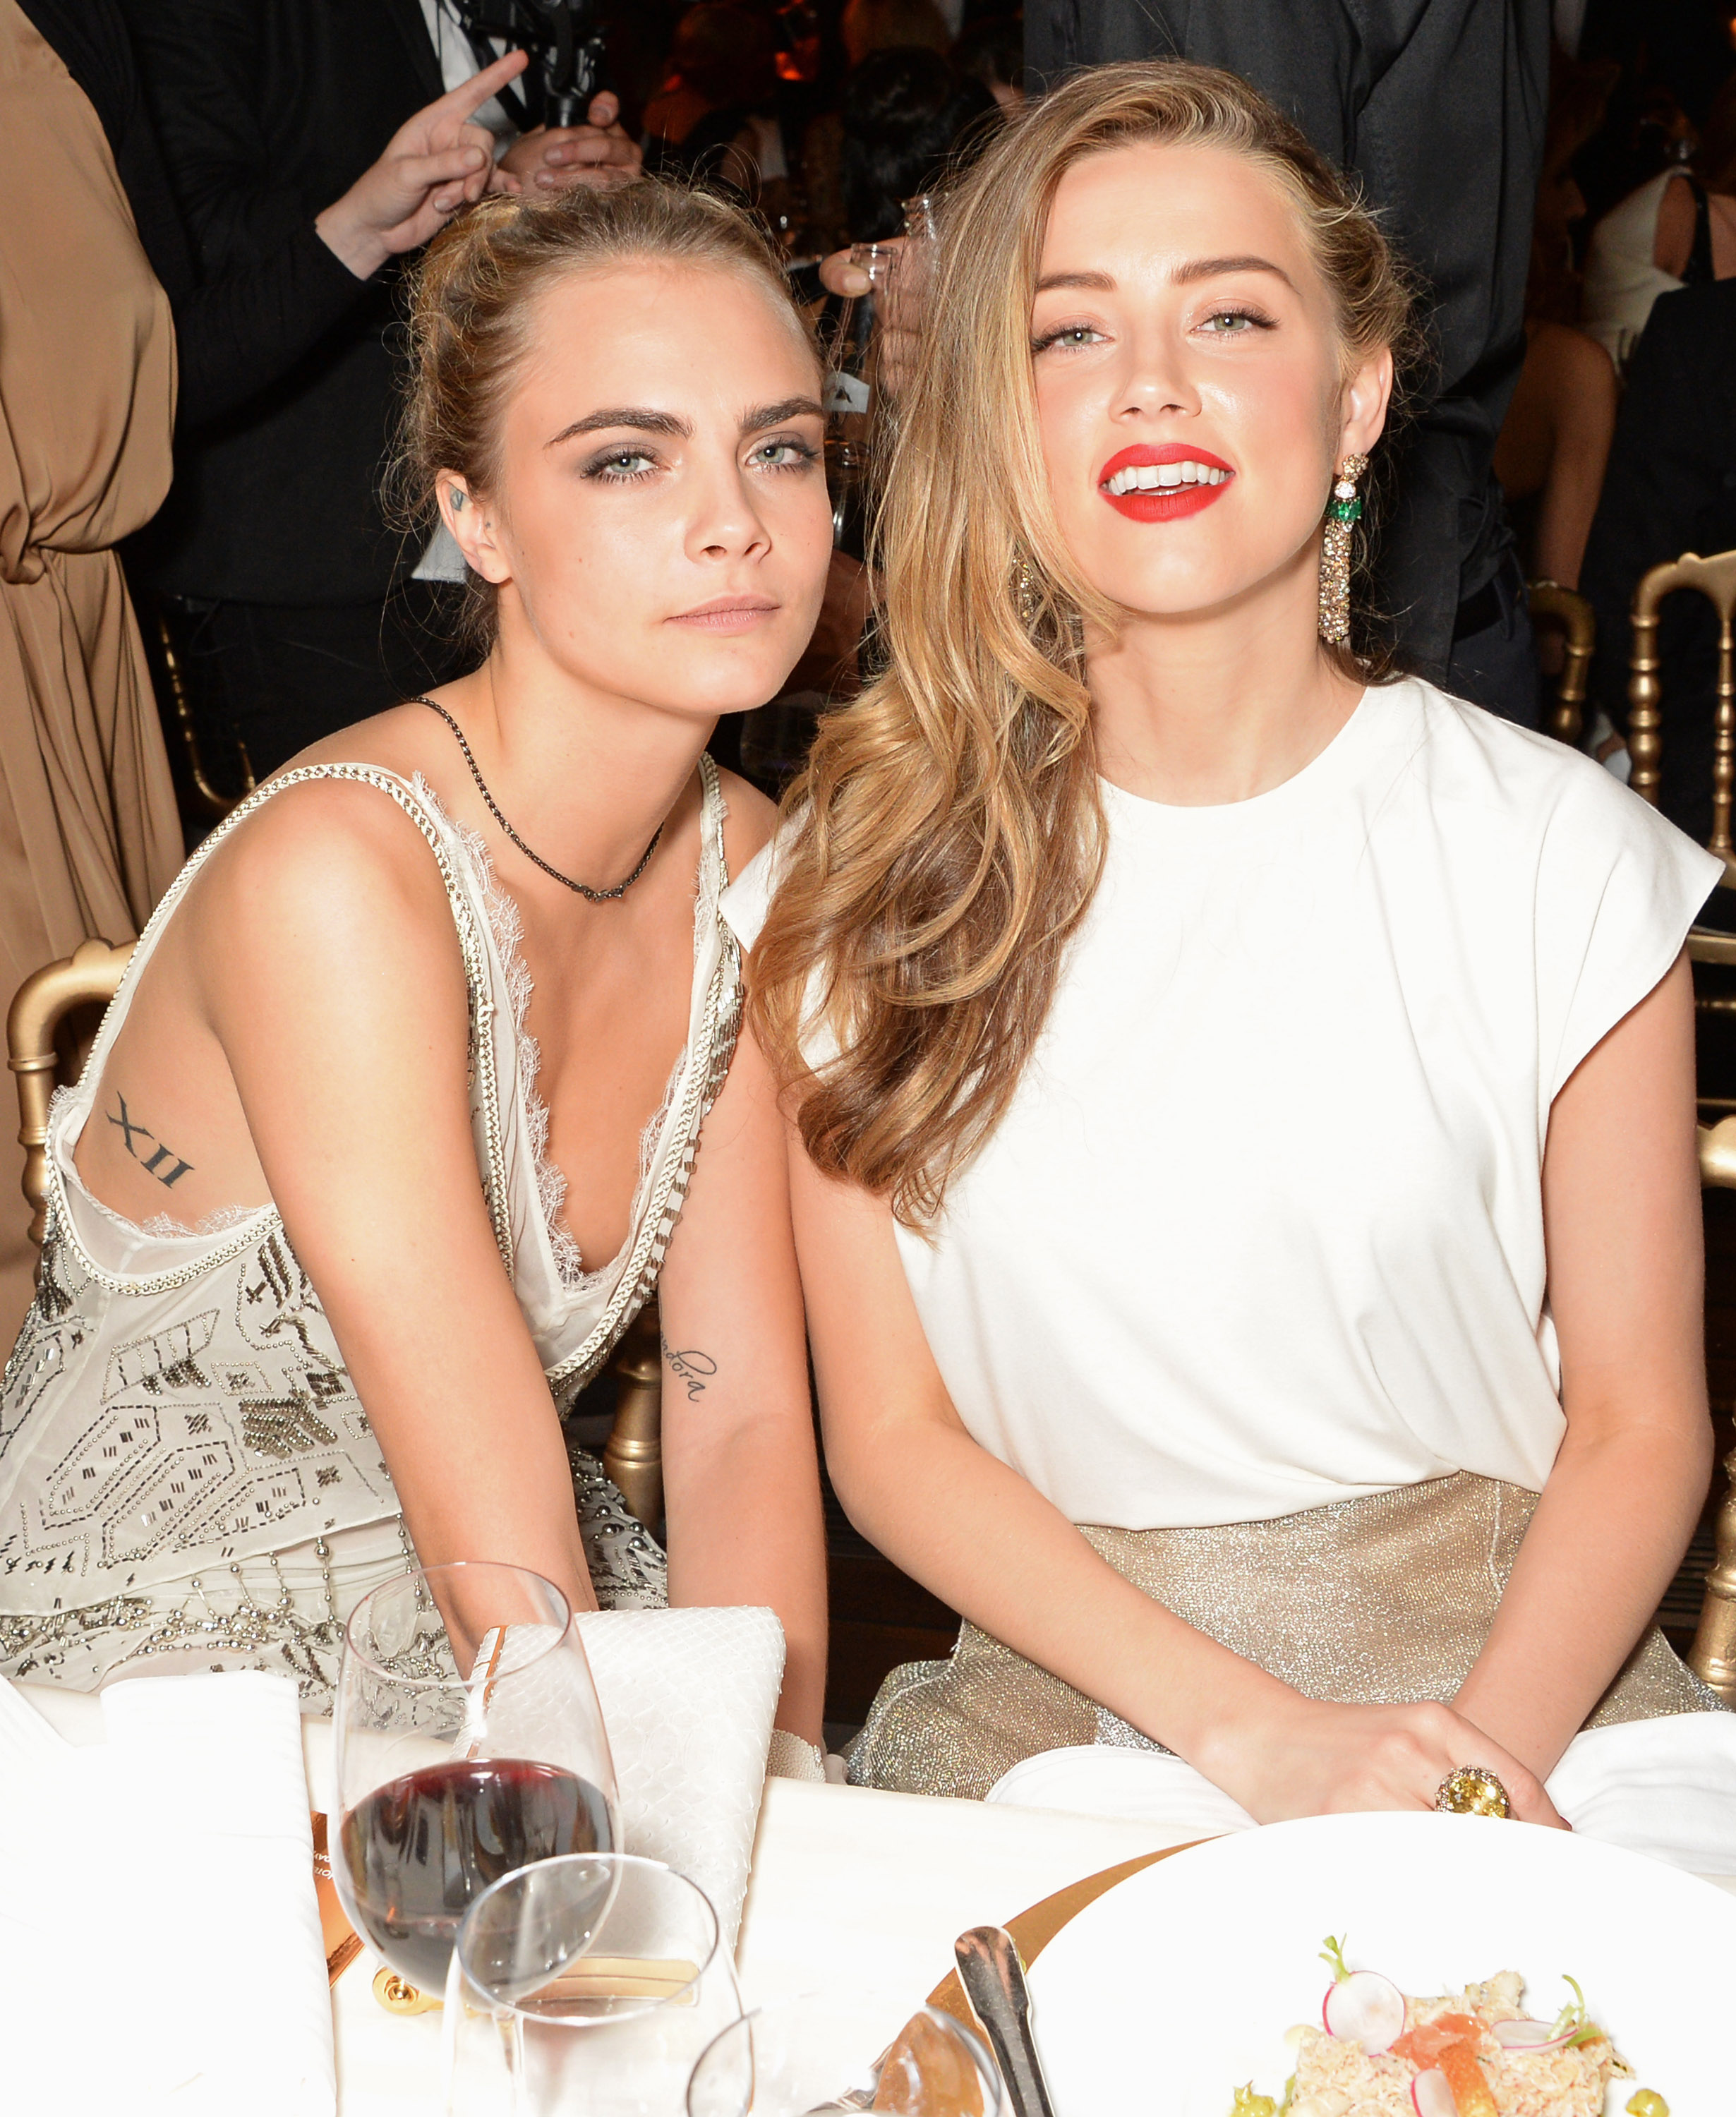 Amber Heard Reportedly Cheated On Johnny Depp With Cara Delevingne Plus More Celeb Love Life News For Mid June 2020 Gallery Wonderwall Com